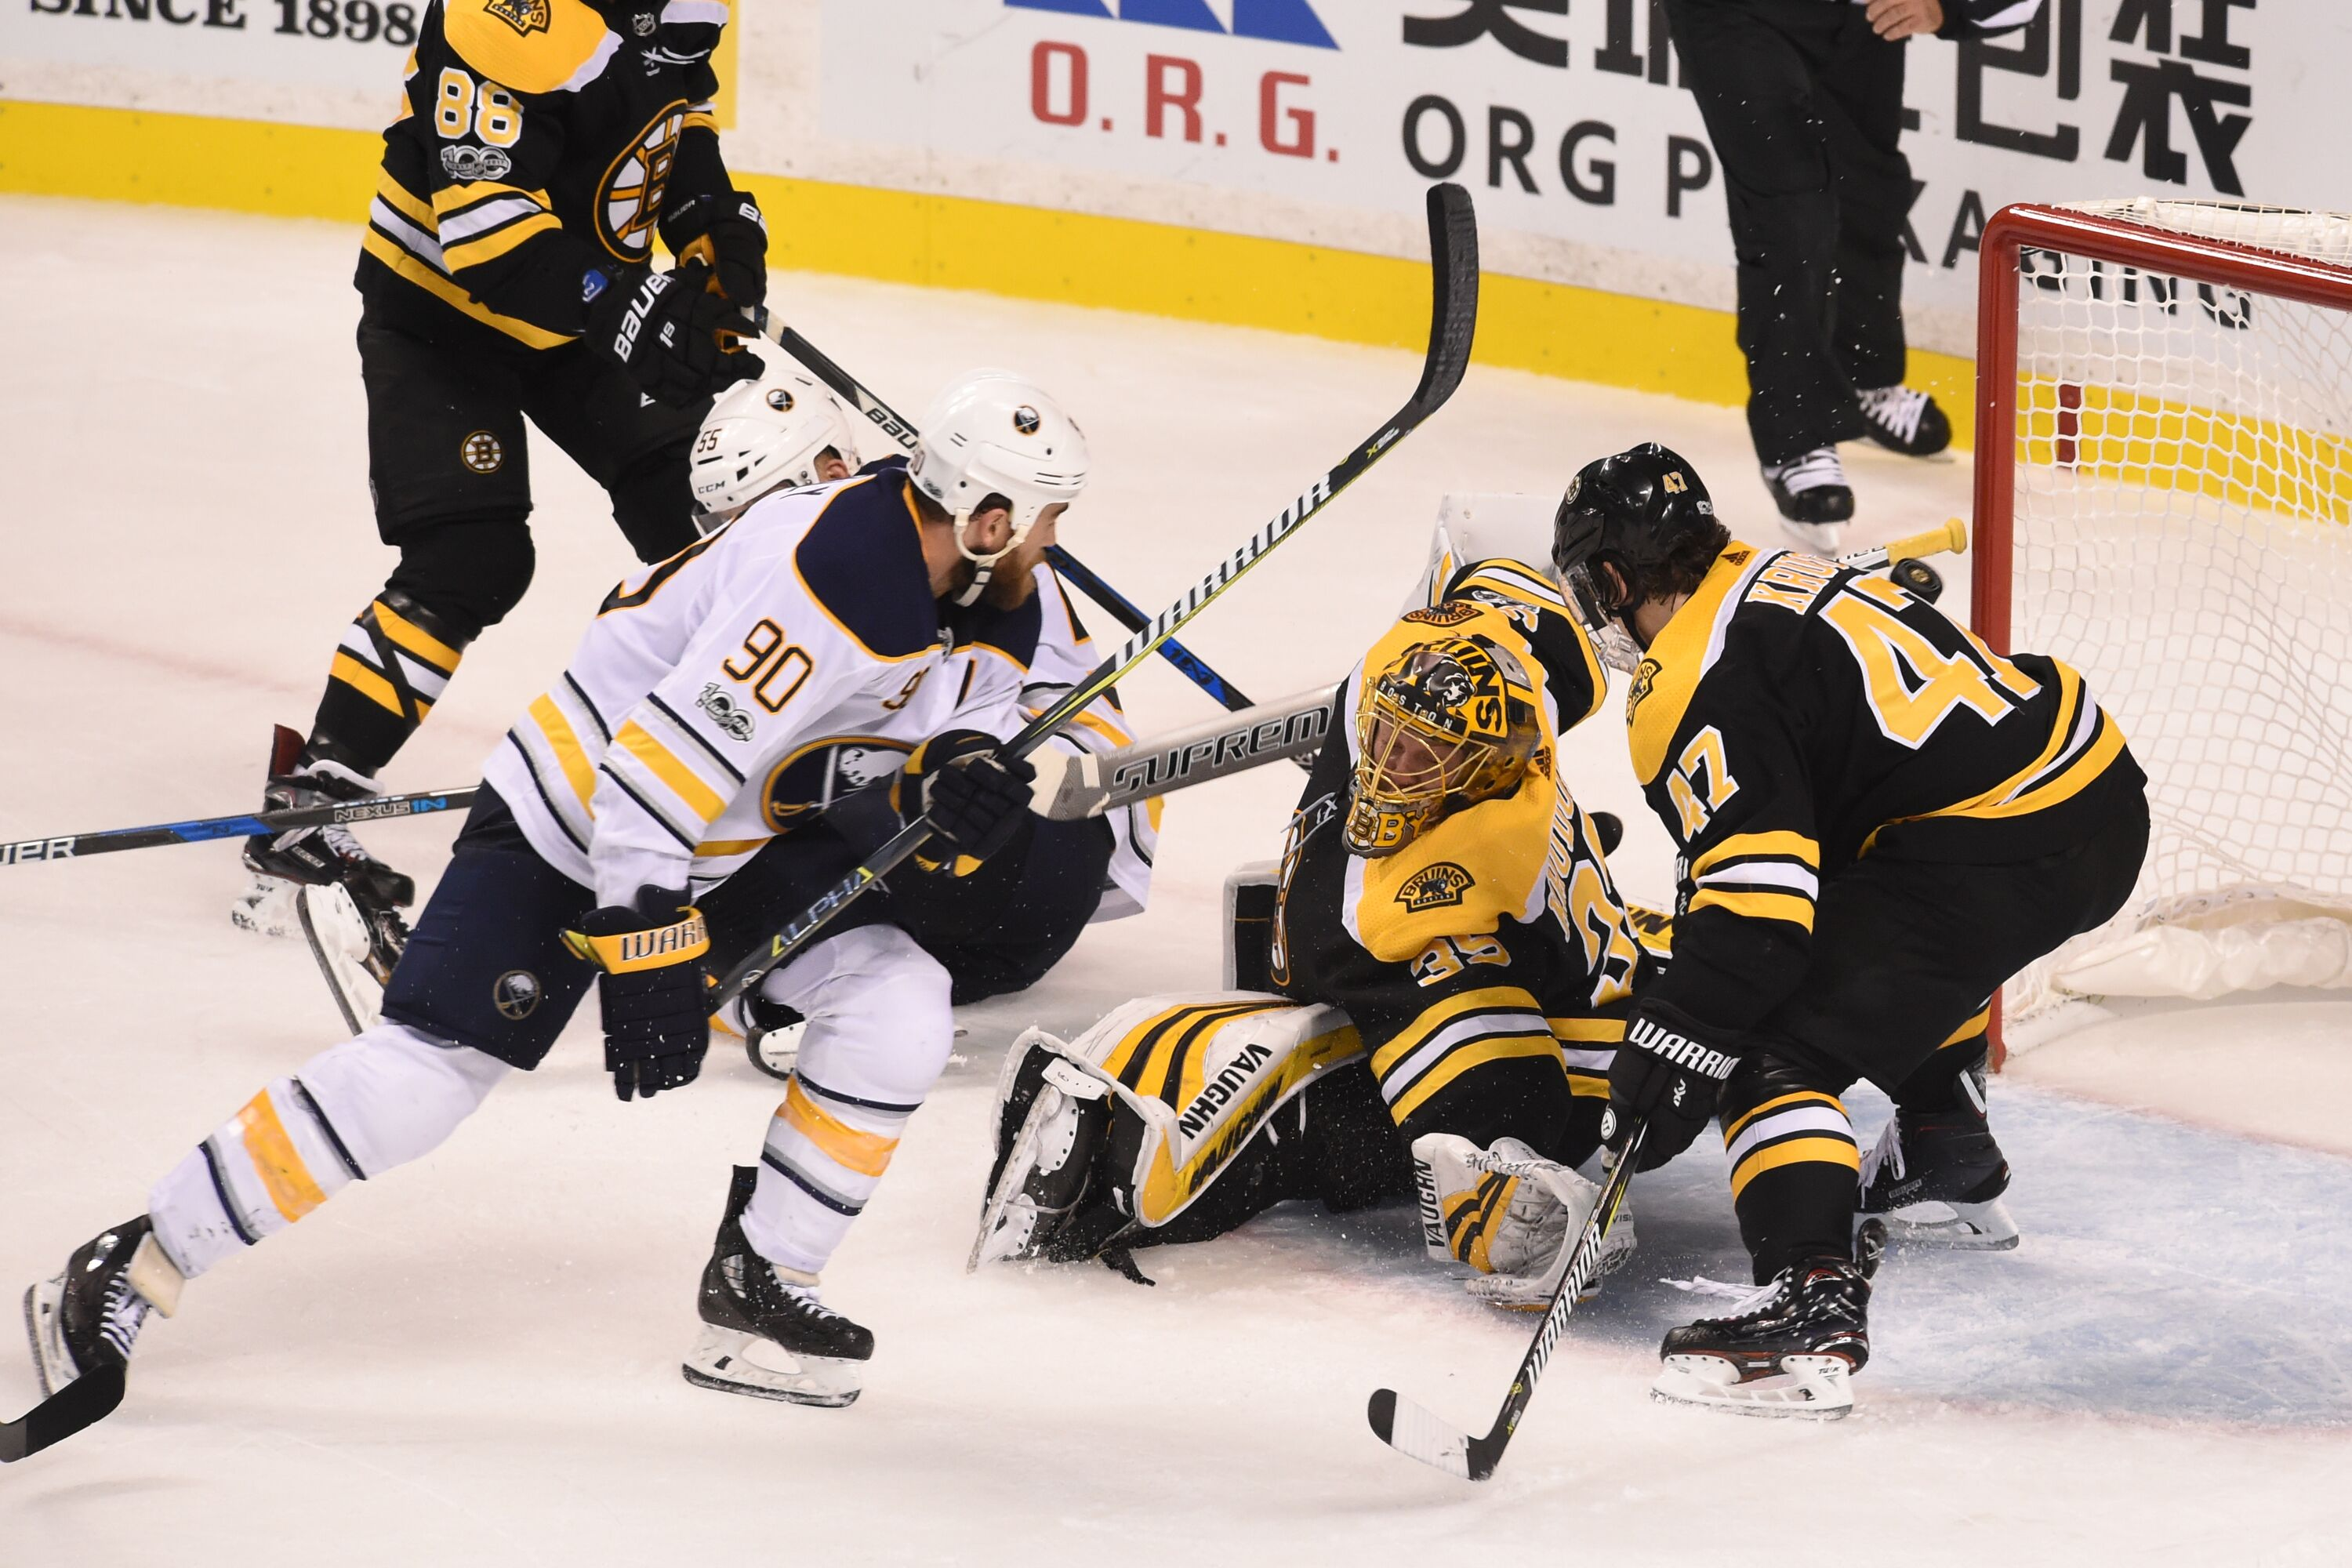 864816504-buffalo-sabres-v-boston-bruins.jpg